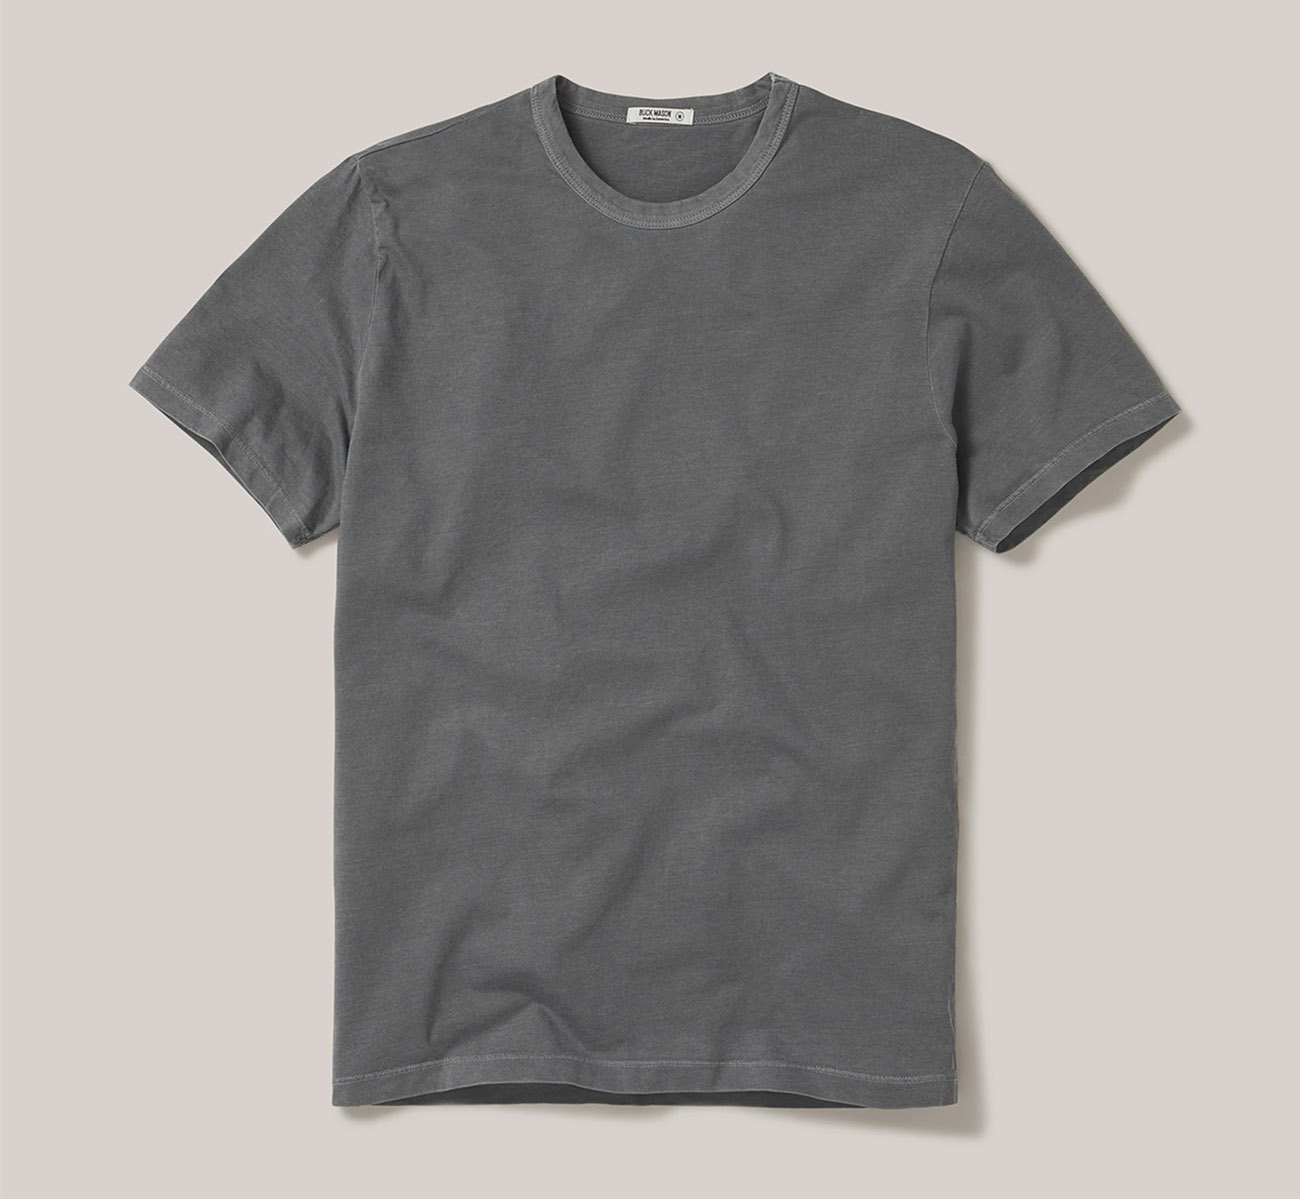 pima tee from buck mason as a gift for dad